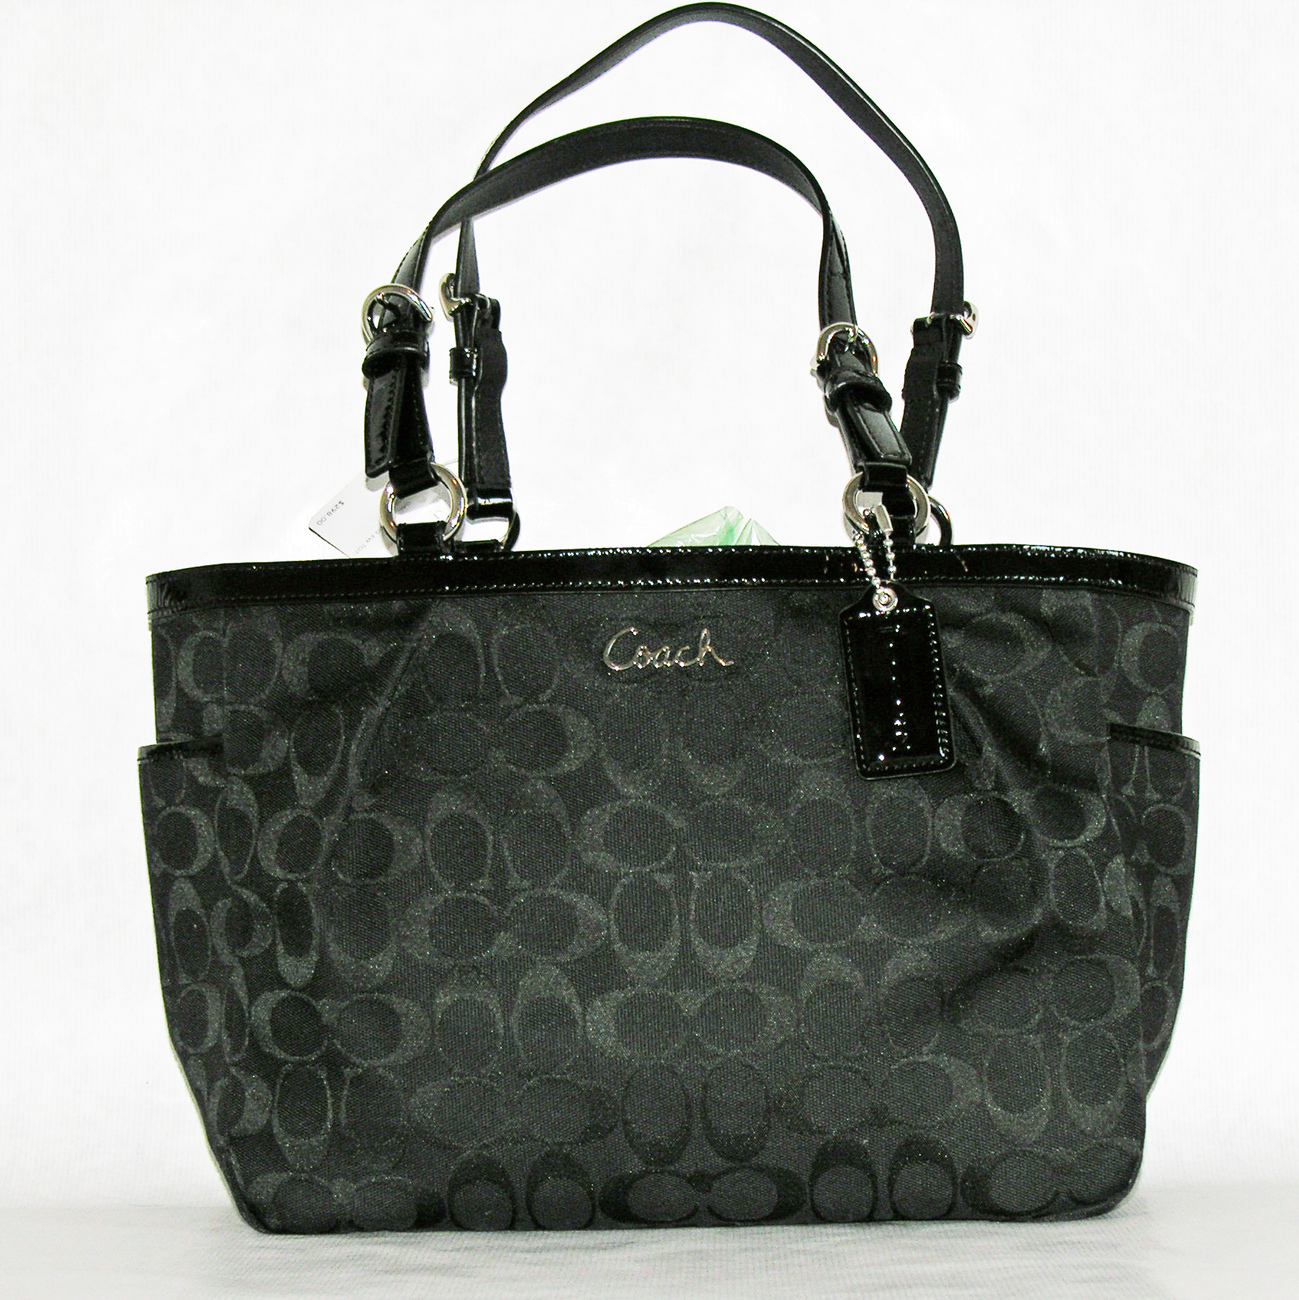 Coach Signature East West Gallery Tote Silver/Black F17726 New